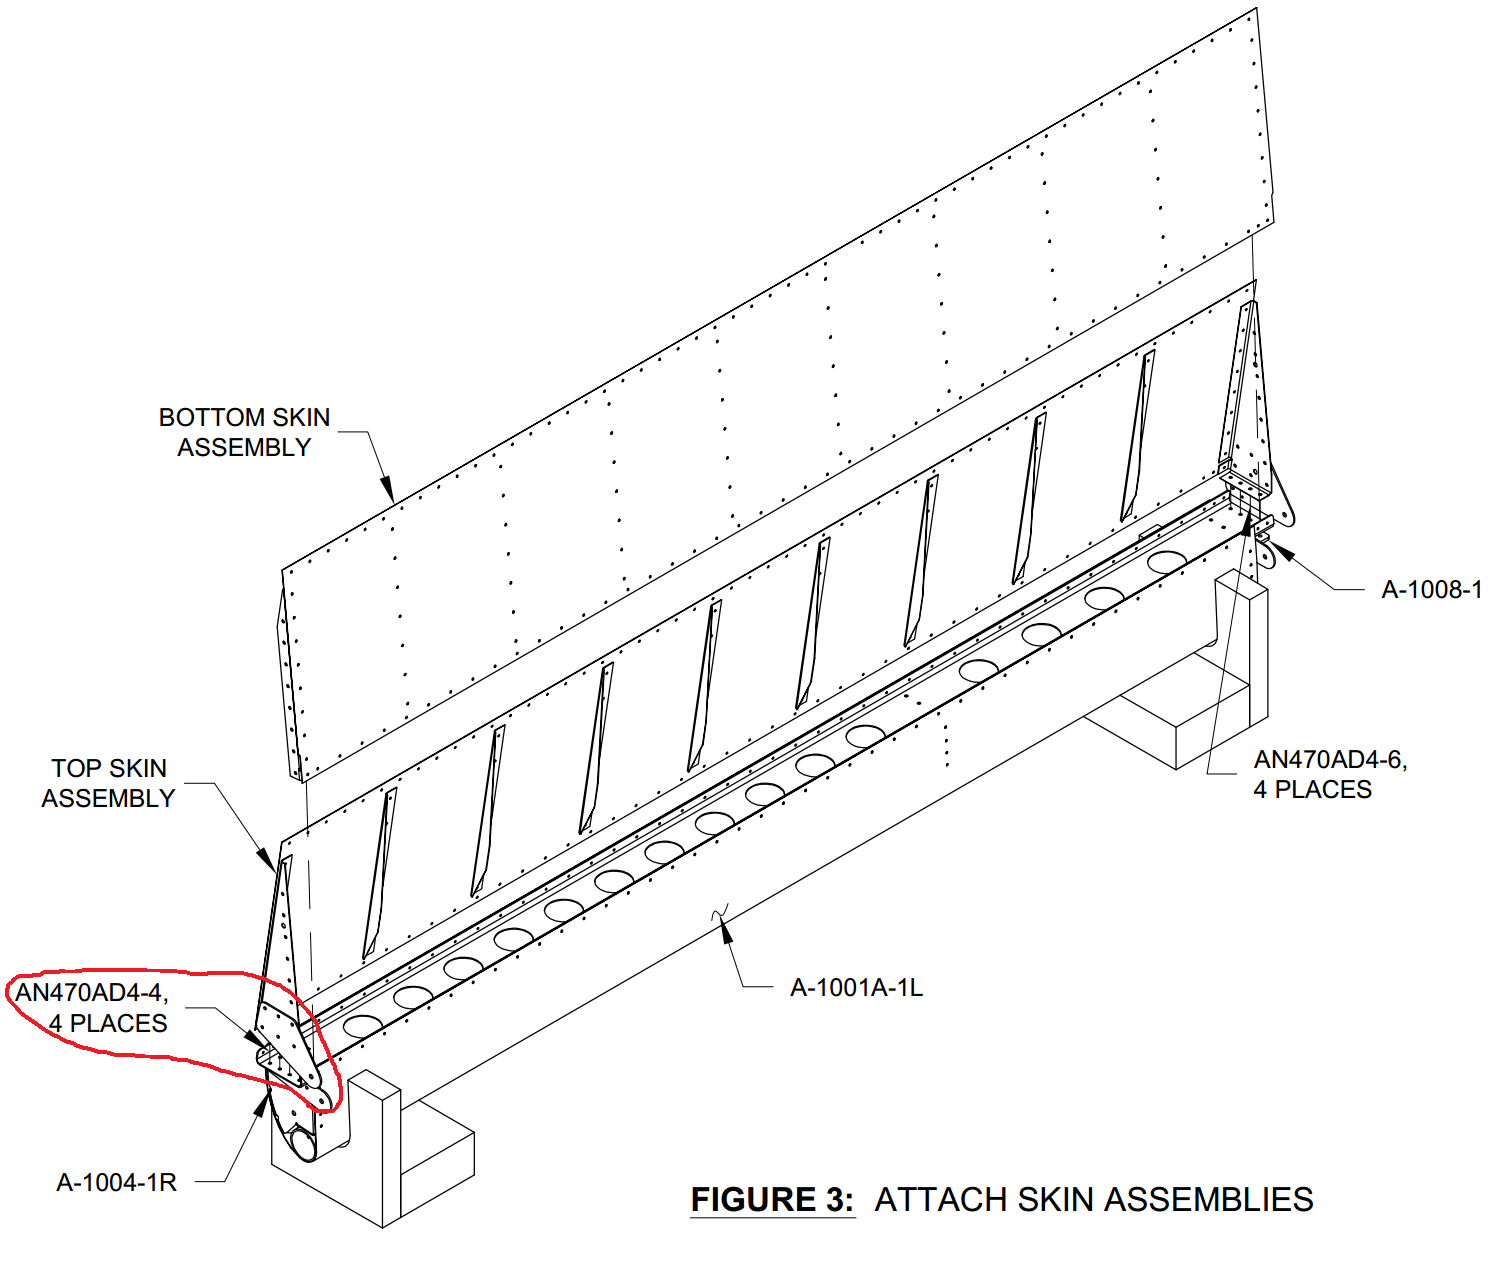 Trailer Wiring Diagram With Electric Kes as well Featherlite Horse Trailer Wiring Diagram likewise Wiring Diagram For Gooseneck as well Wiring Diagram Lighting Contactor besides Sundowner Wiring Diagram. on sundowner trailer wiring diagram